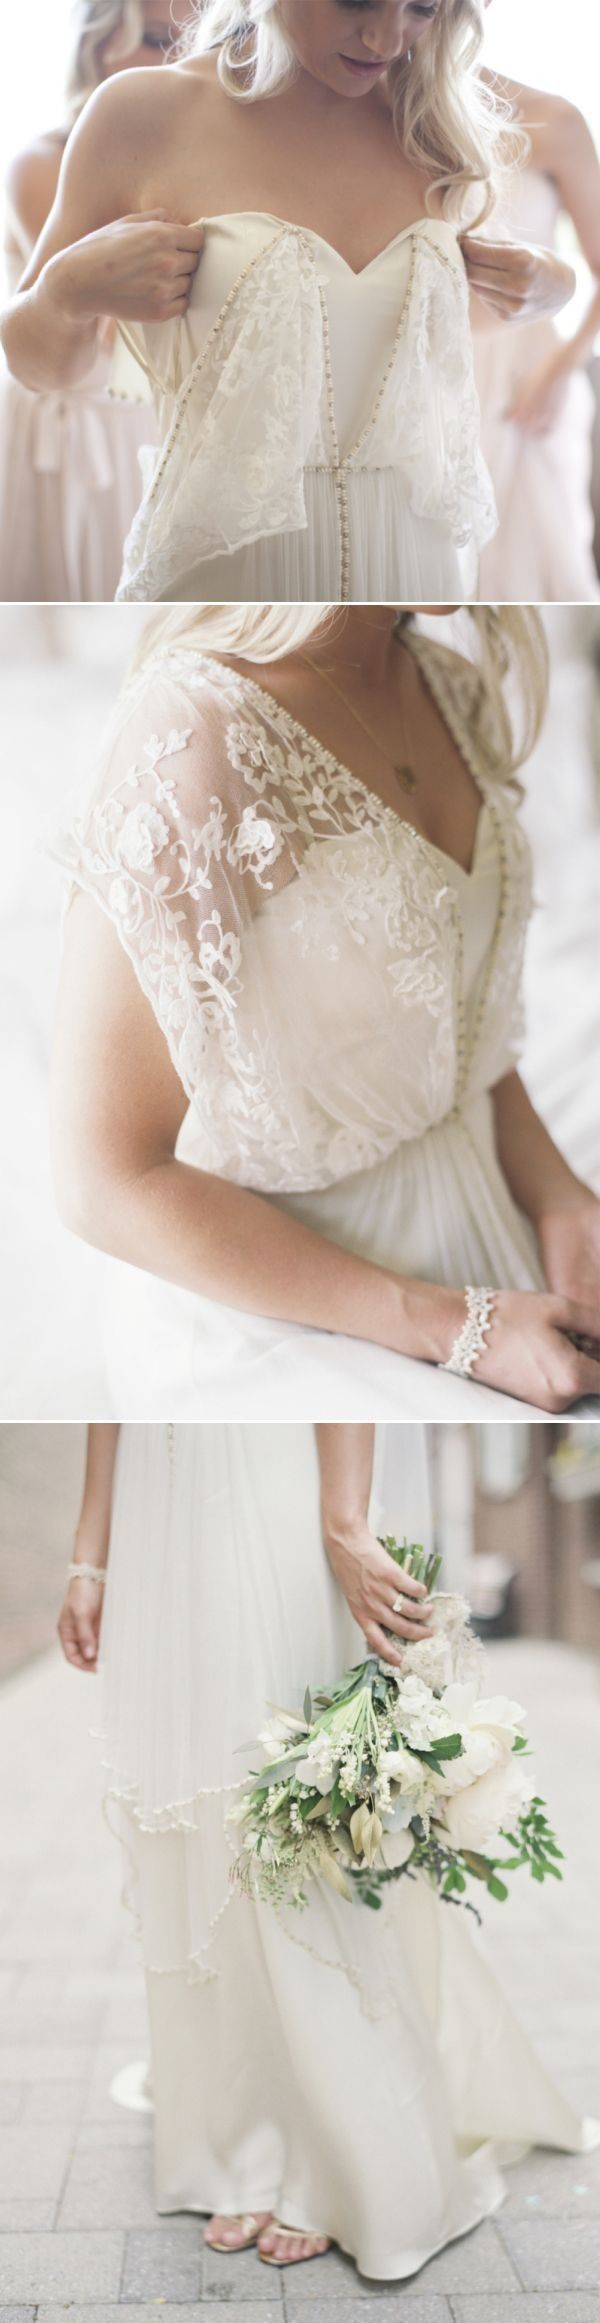 Top vintage wedding dresses for trends boho style wedding